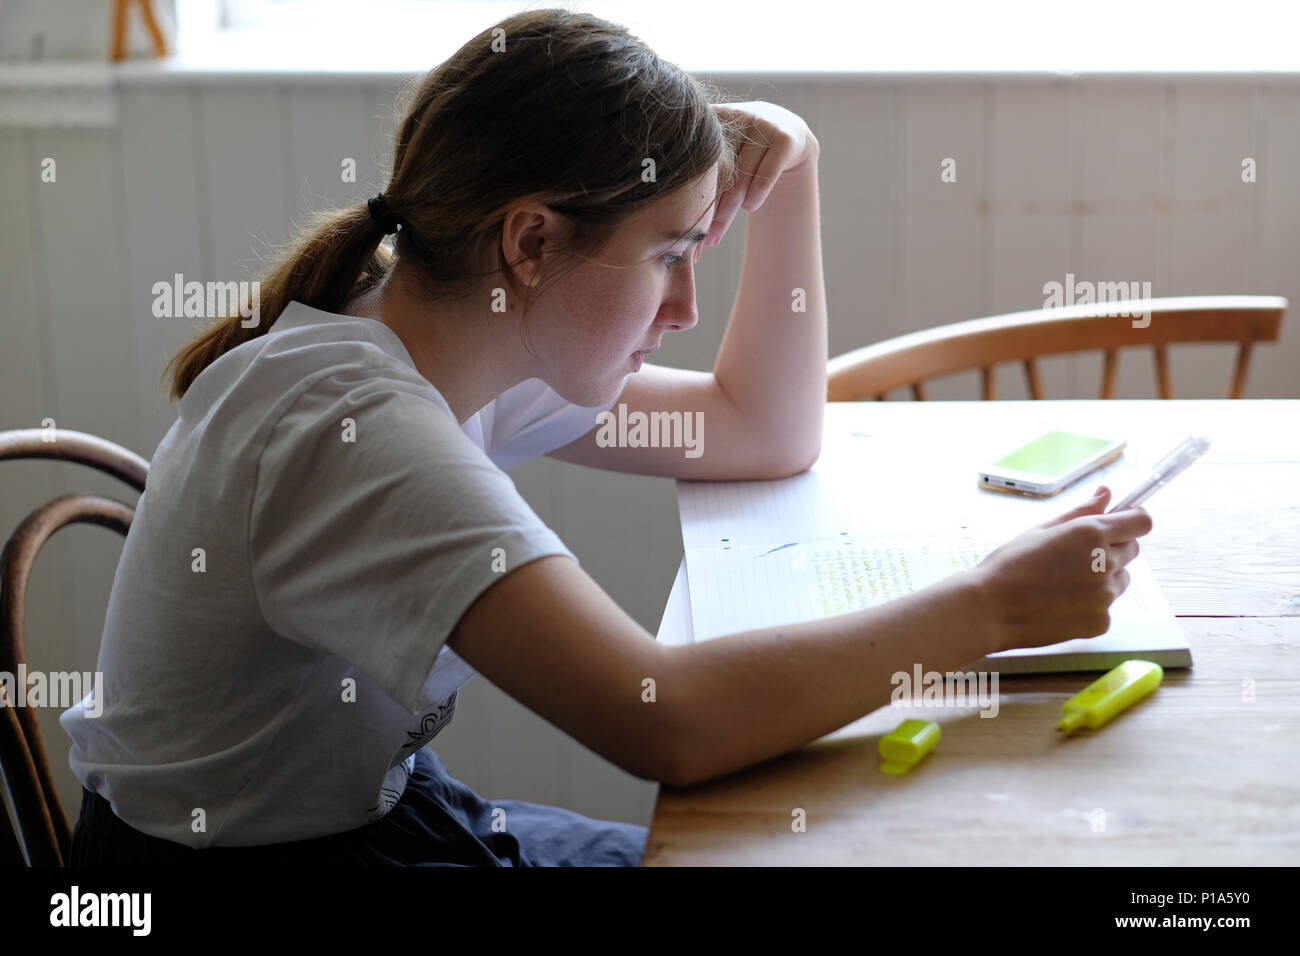 An 18 year-old girl studying for A levels on the kitchen table - Stock Image